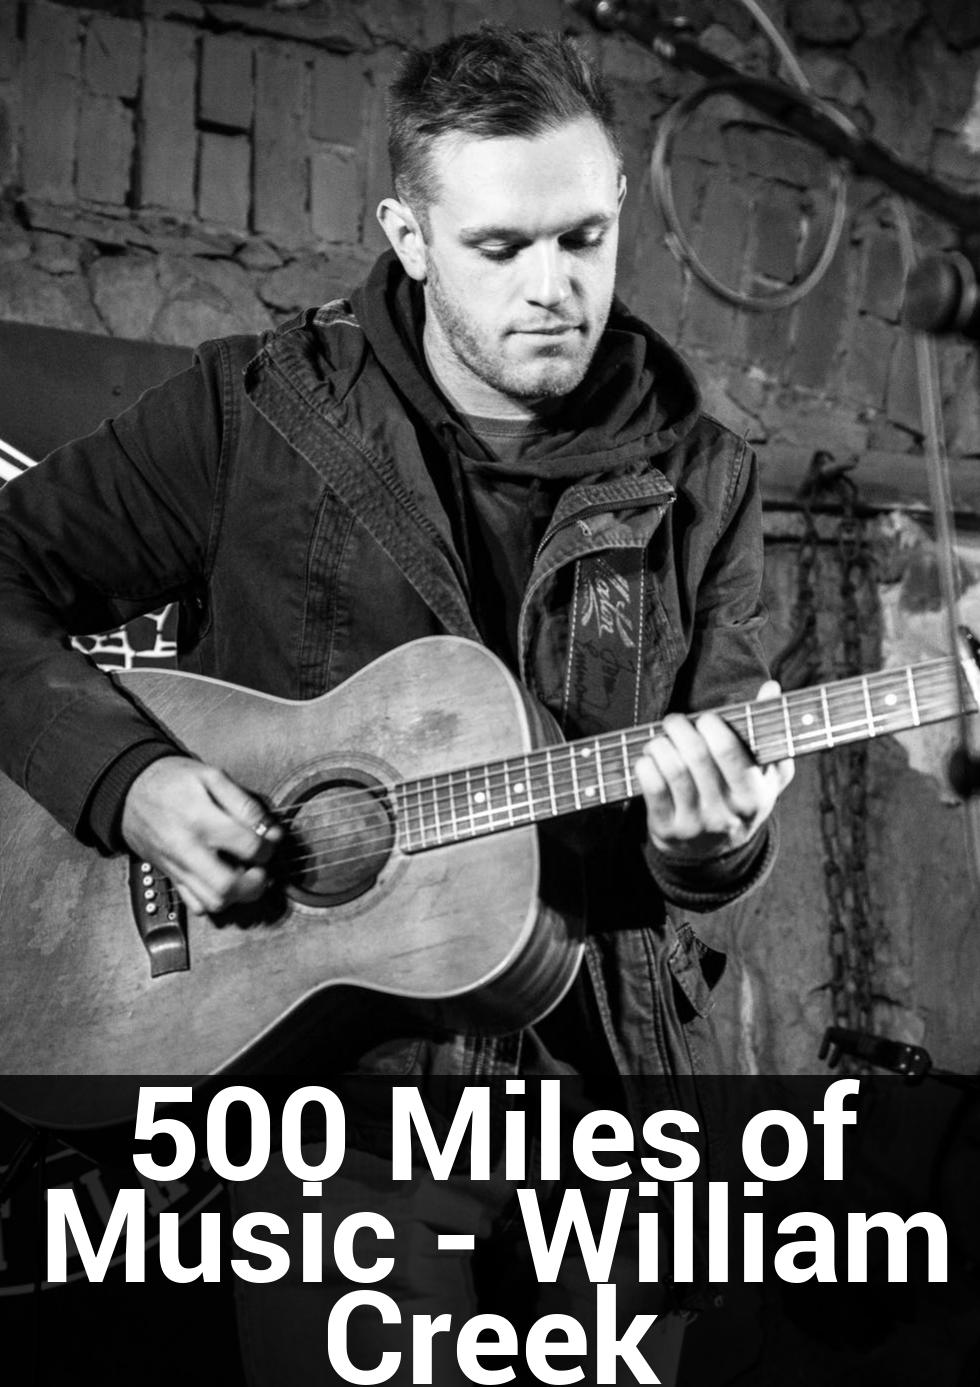 500 Miles of Music - William Creek at William Creek Gymkhana Shed